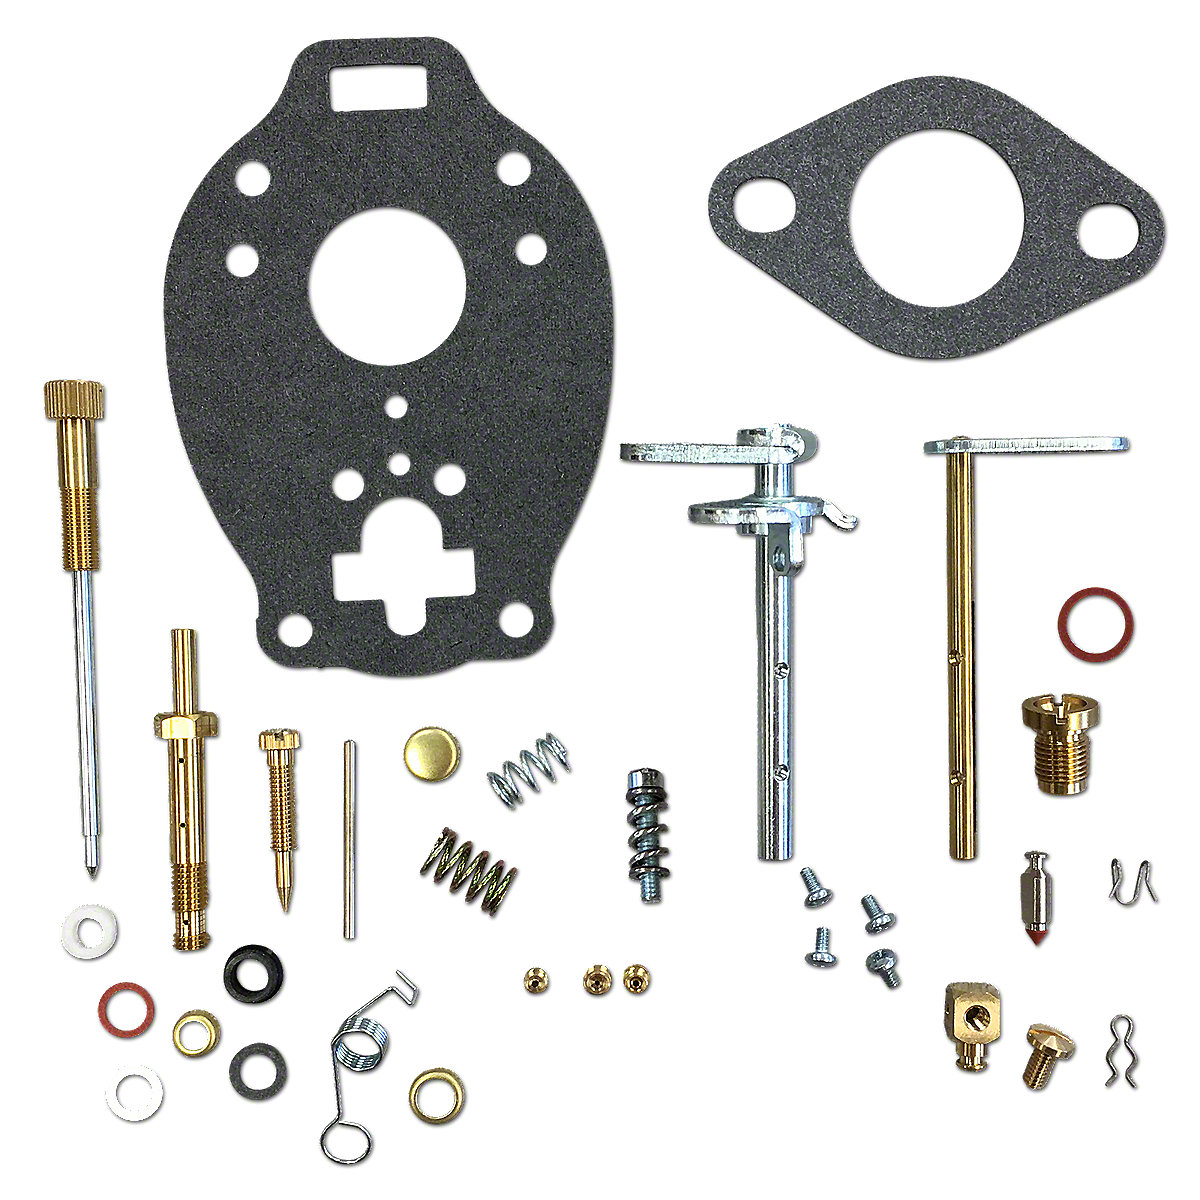 ABC473 Complete Carburetor Repair Kit (Marvel Schebler)